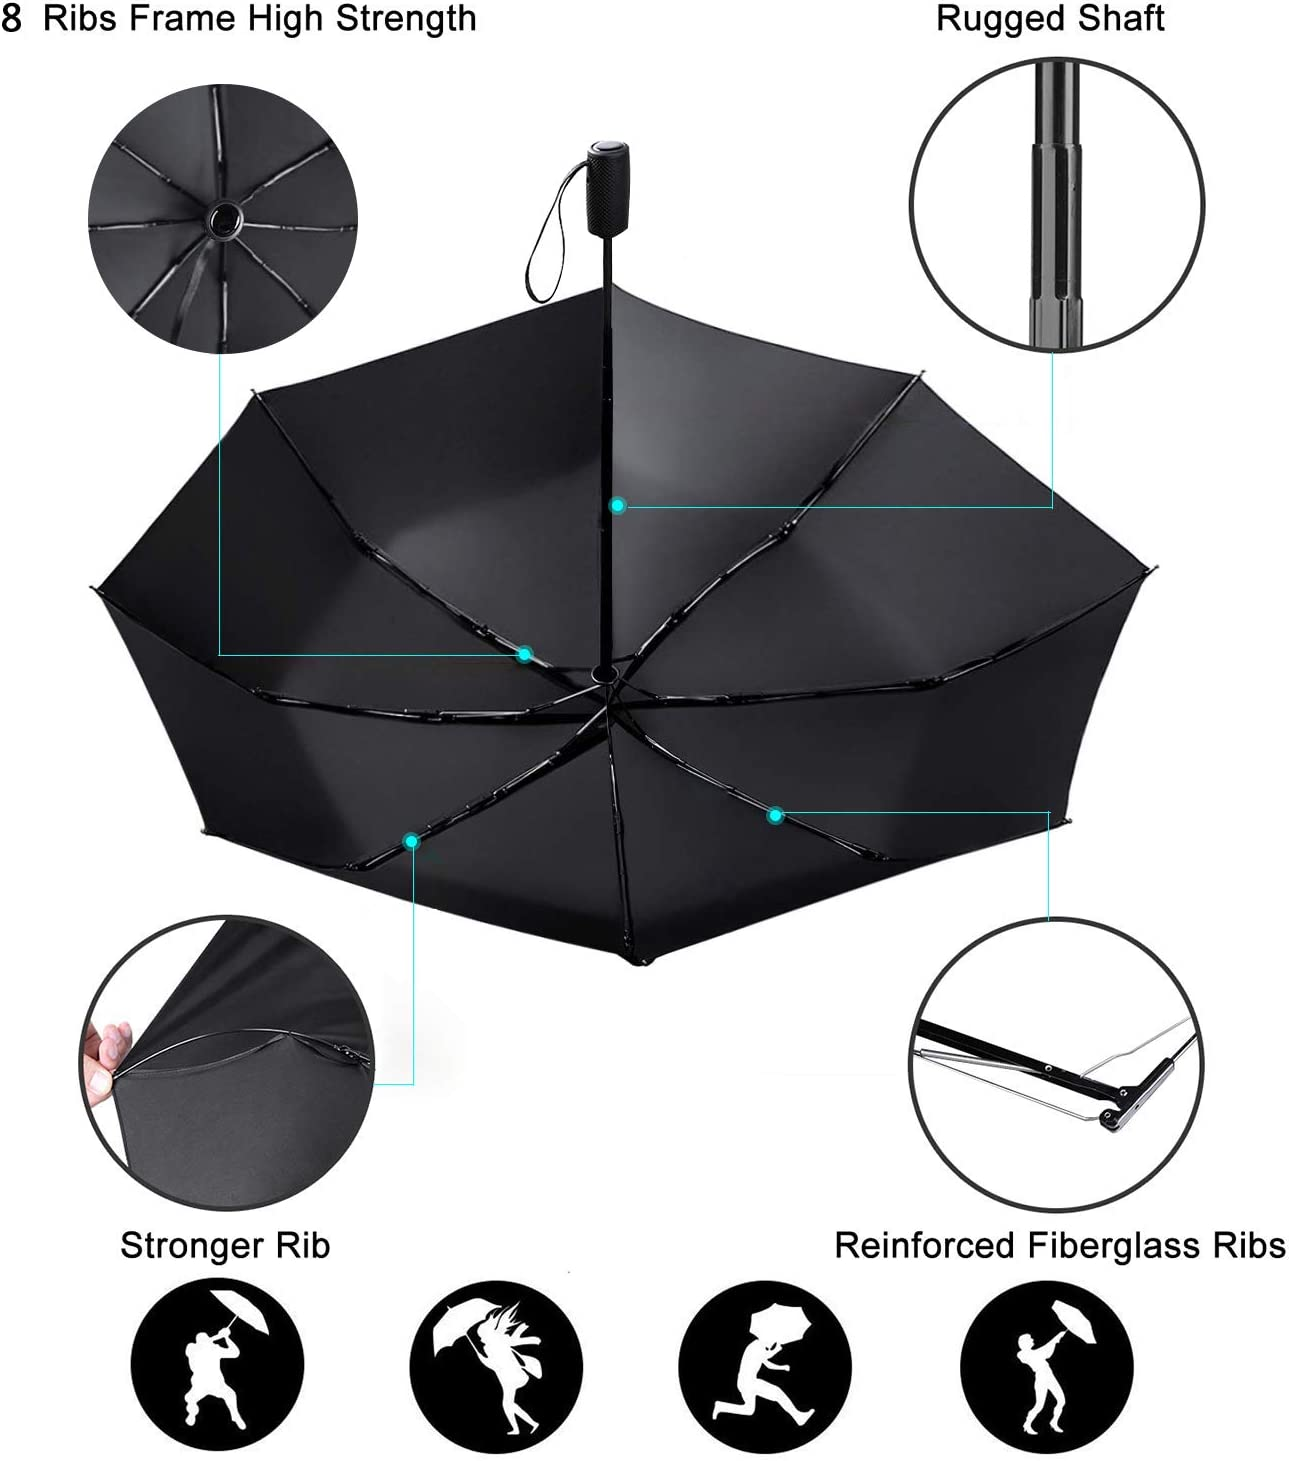 Auto Open//Close for One Handed Operation Ergonomic Non-Slip Handle Compact Umbrella,Hipster Cocktail Daiquiri Automatic Folding Travel Umbrella,Windproof Reinforced Canopy